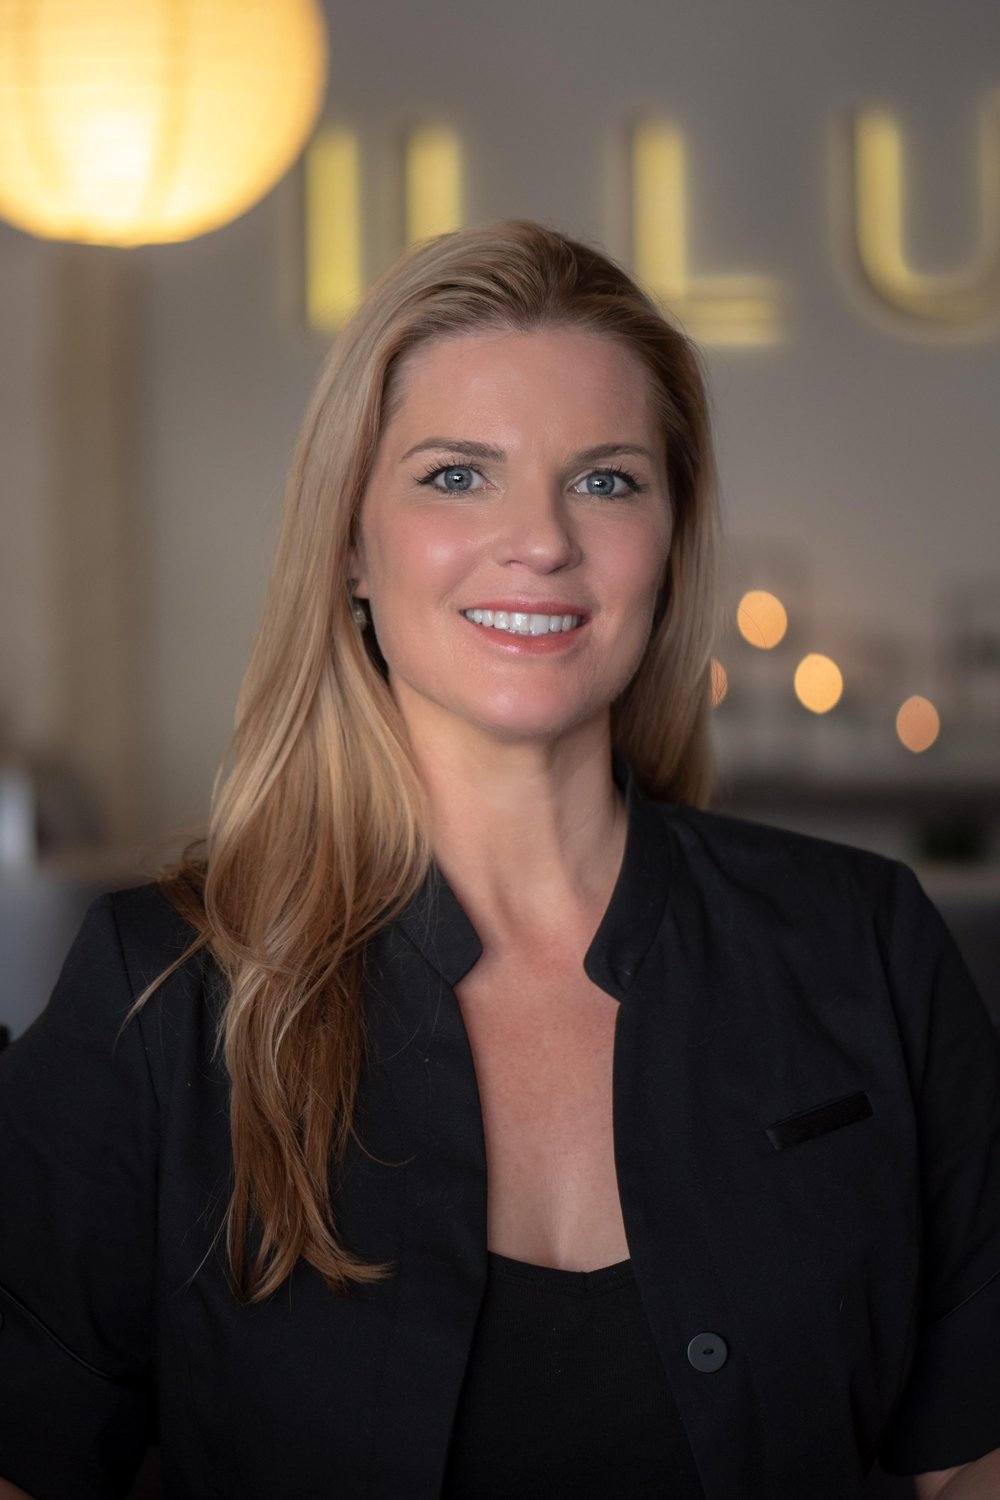 BETHANY ANDERSON - ILLUME LaserSpa Founder  Medical Esthetician, Laser Hair Removal CME